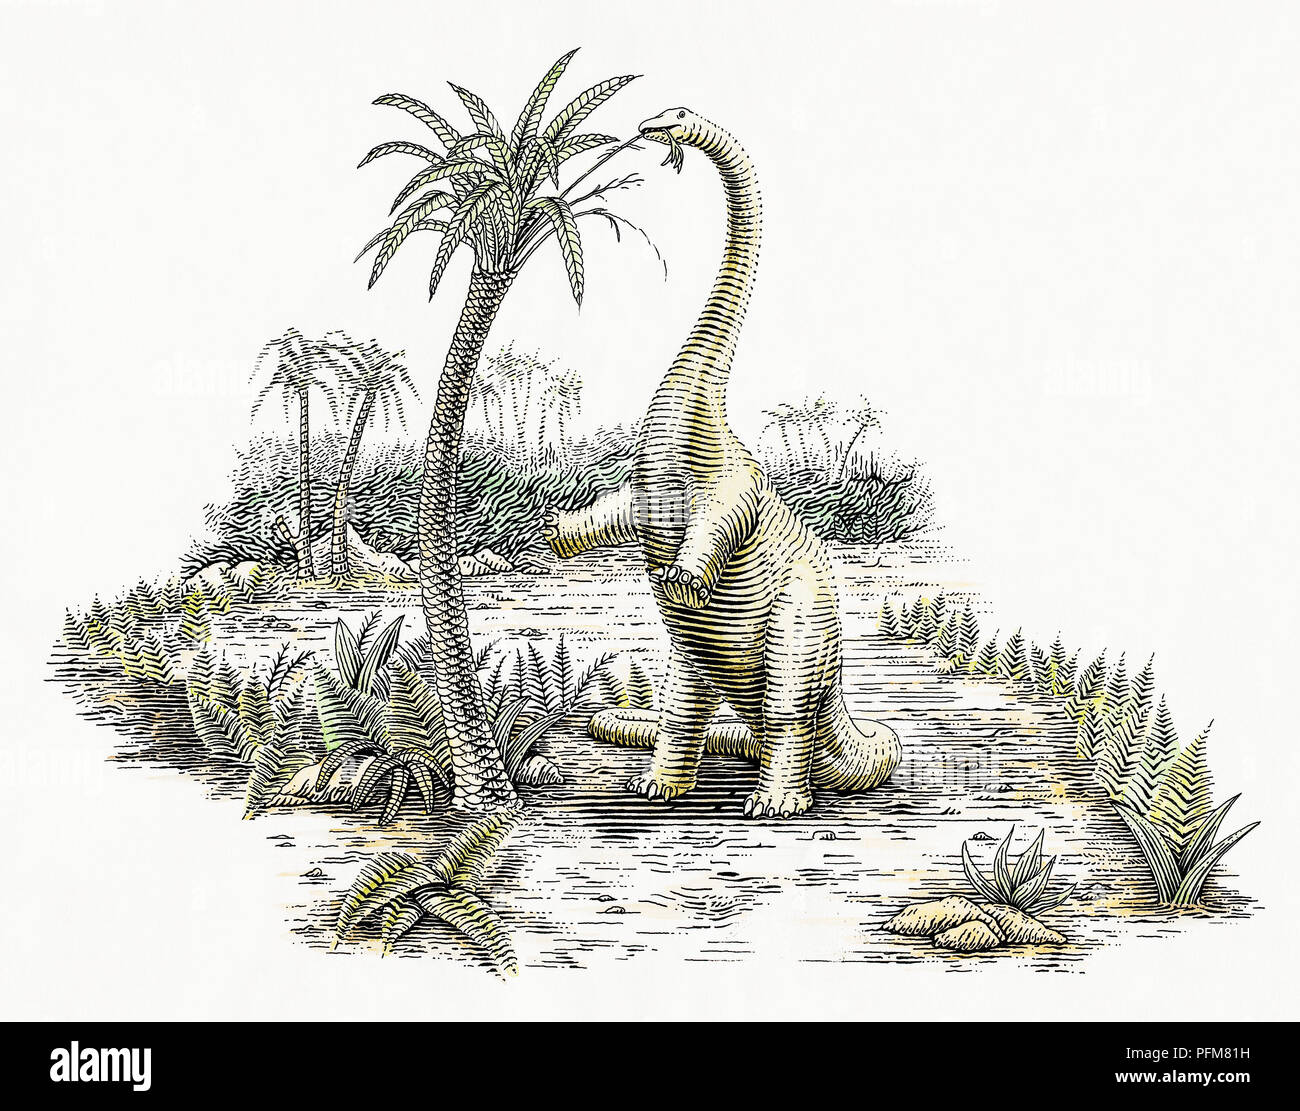 Diplodocus And Kentrosaurus Models: Dinosaurs Cut Out Stock Images & Pictures